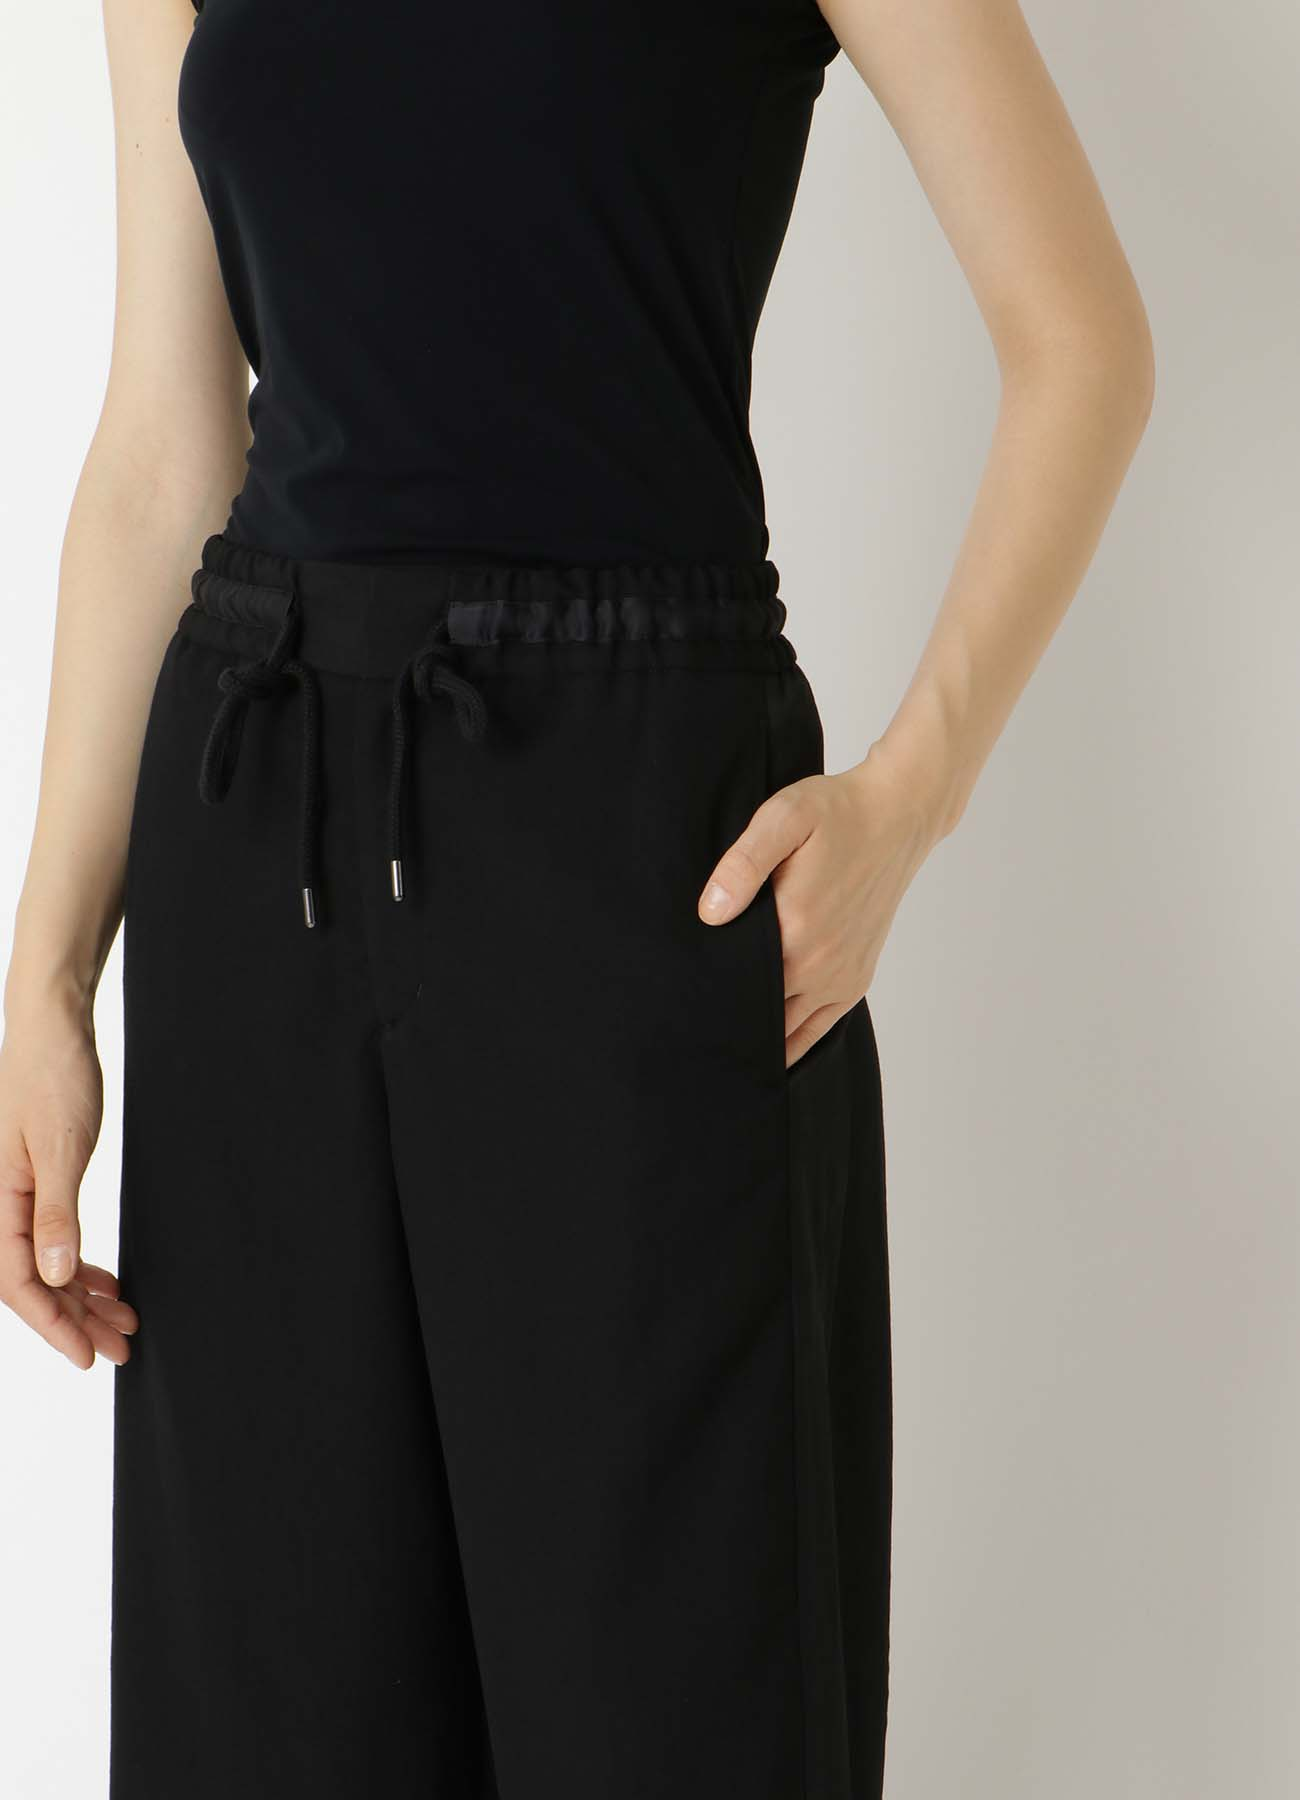 DRY-WASHER GABARDINE WAIST STRING PANTS